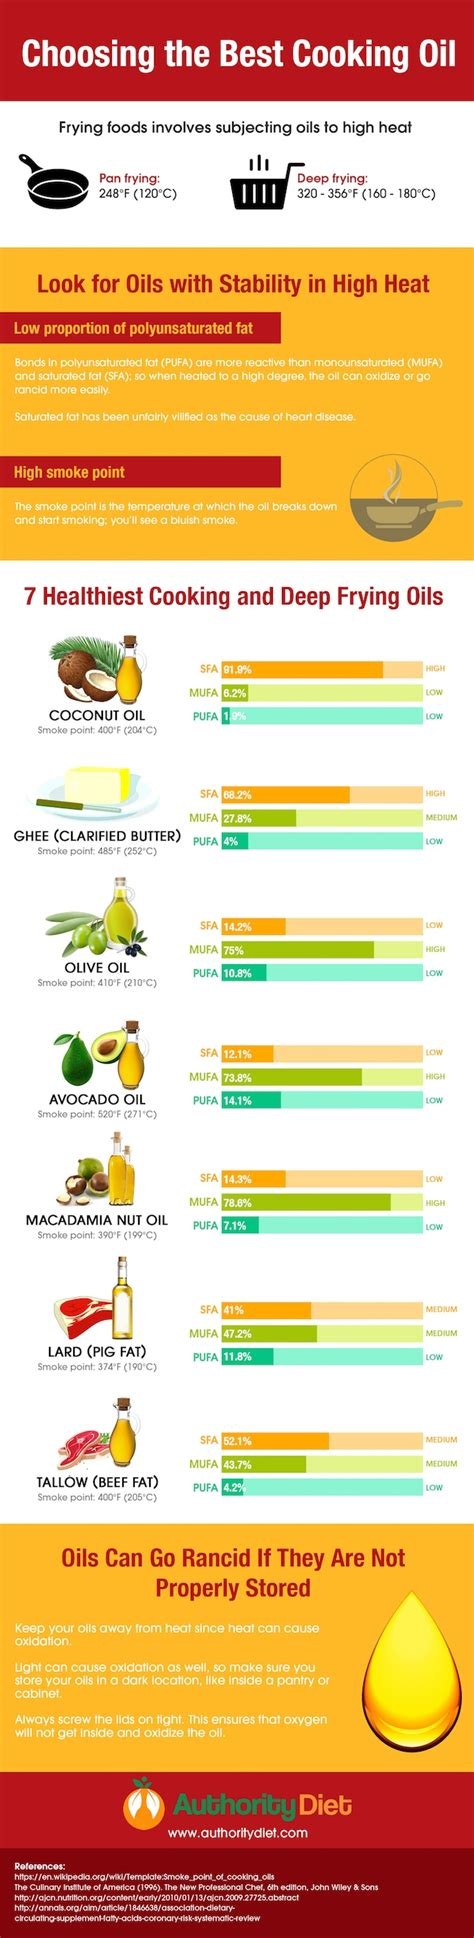 frying cooking oils healthy infographic oil deep food cook healthiest chart smoke months story please infographics guide paste copy below